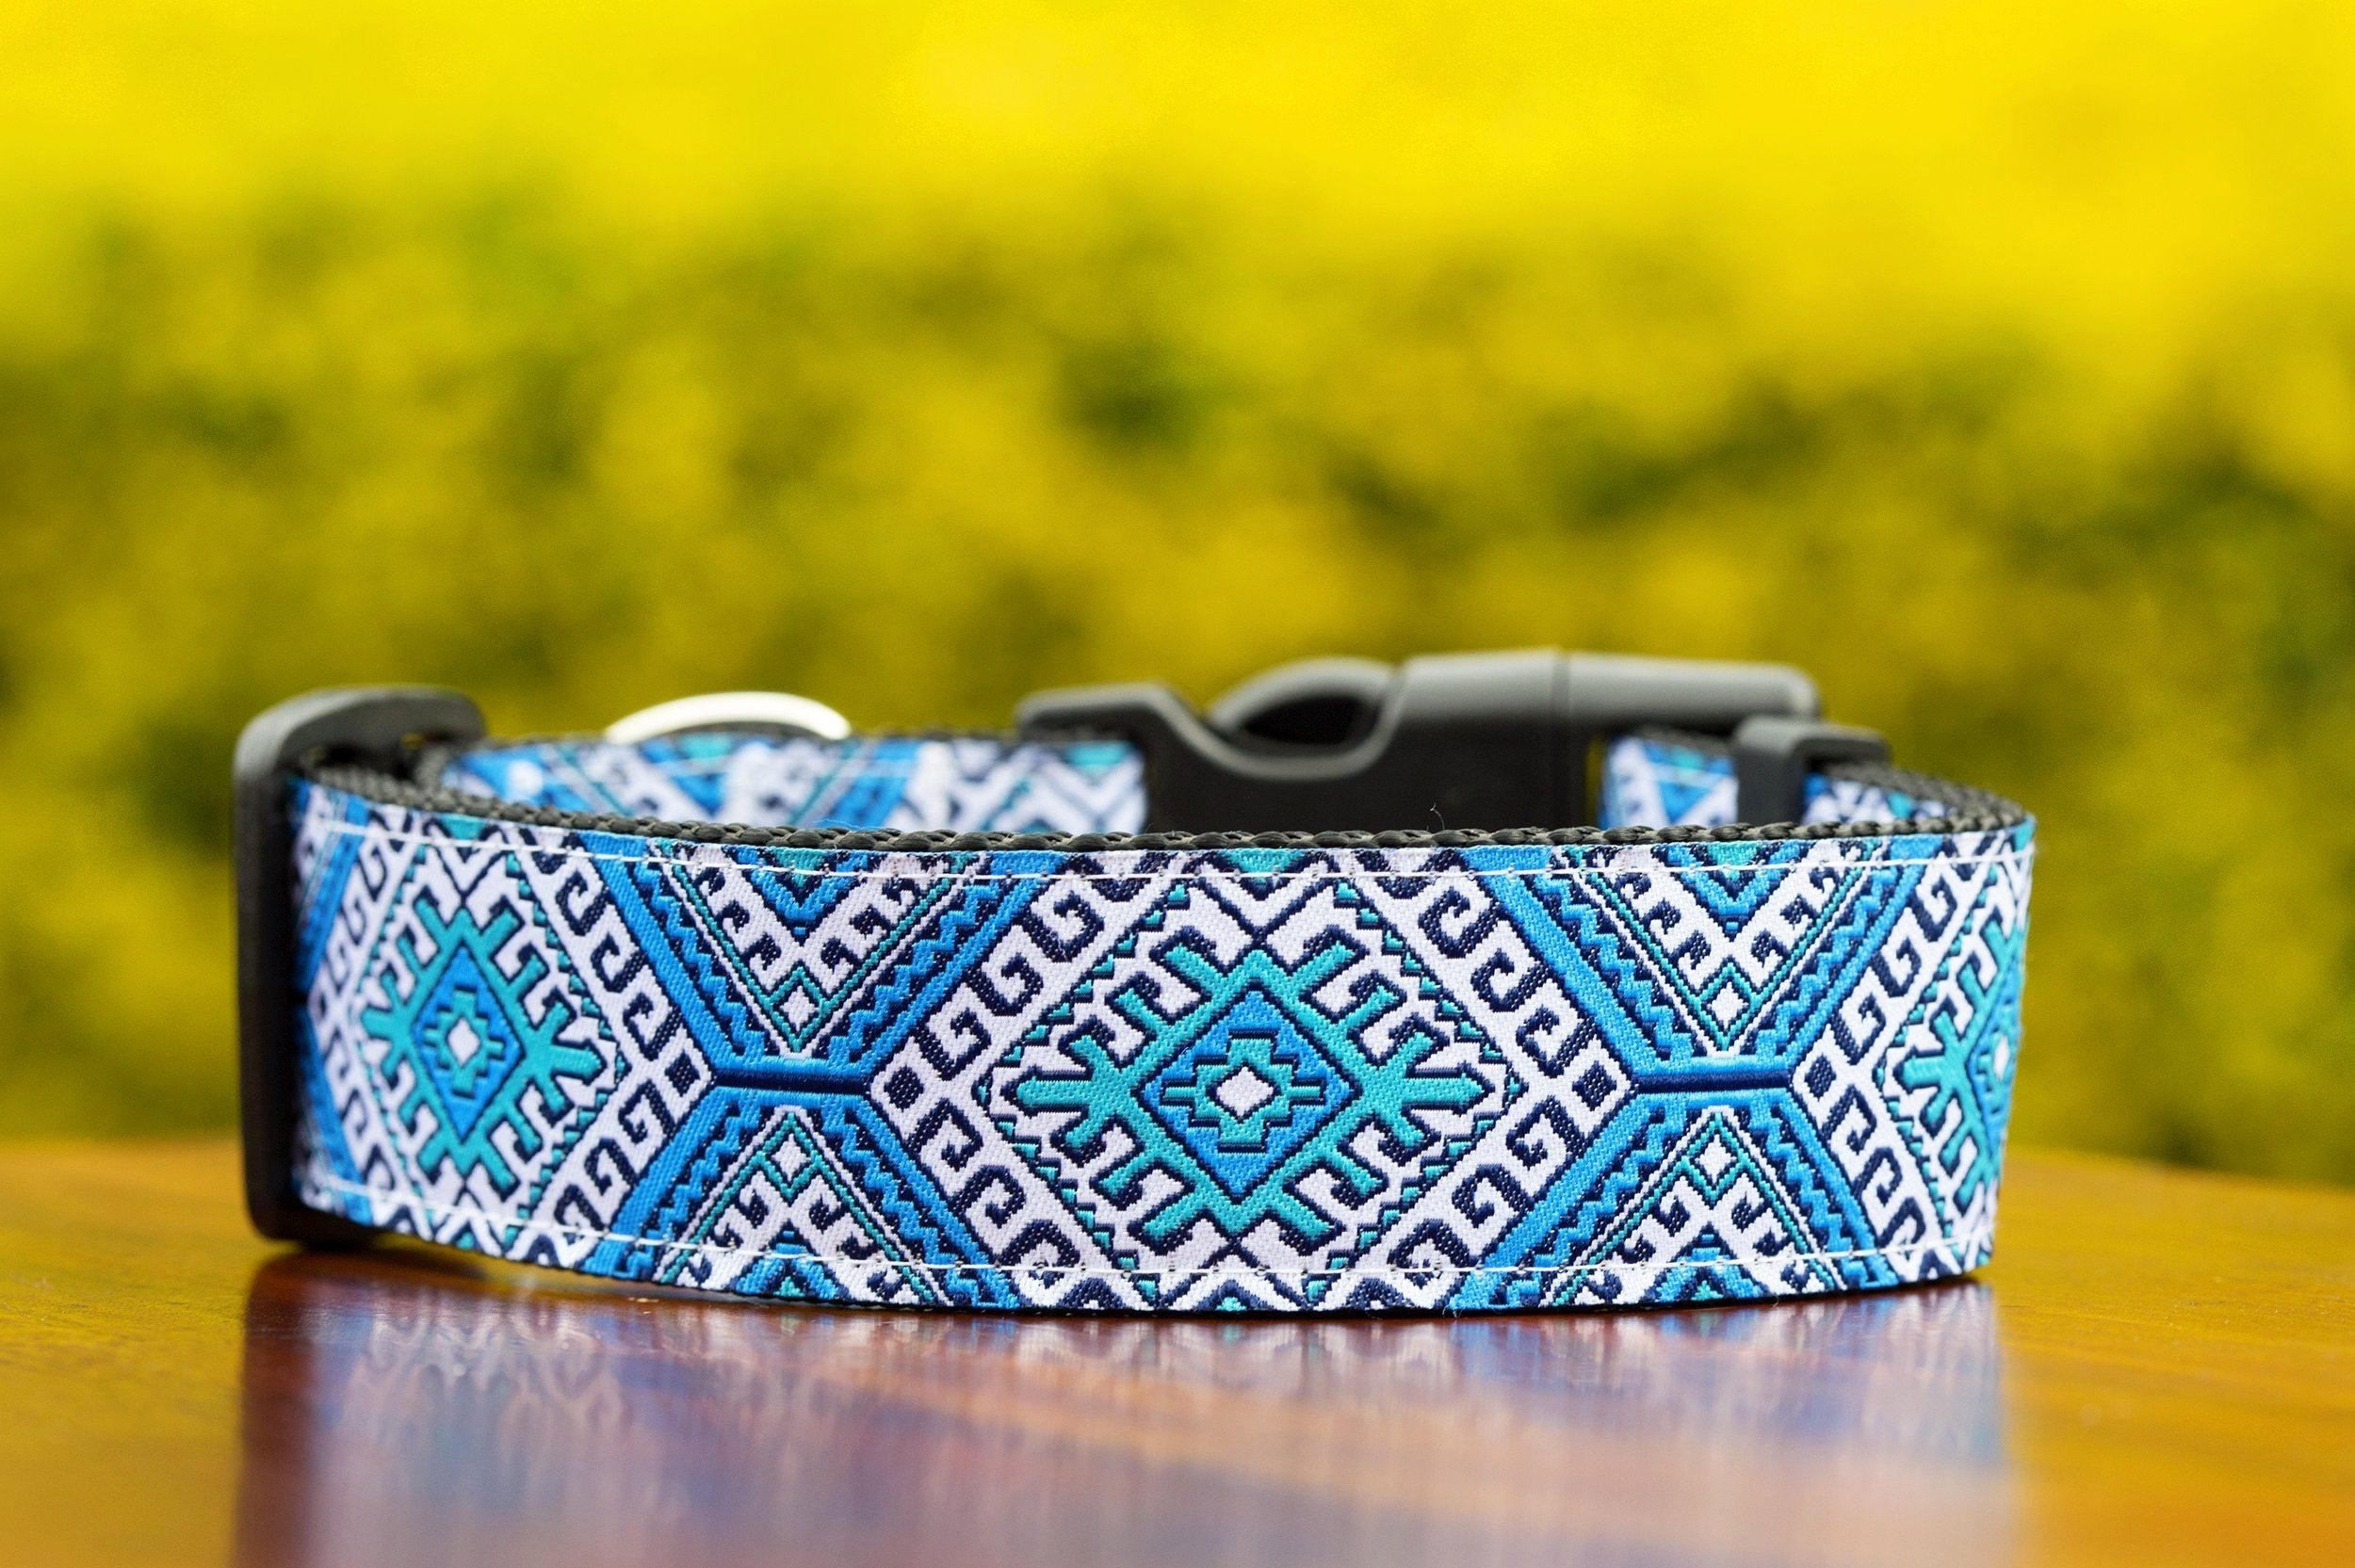 "Blue Mexican Dog Collar 1.5"" Wide-Dog Collar-Dizzy Dog Collars-Medium-Dizzy Dog Collars"